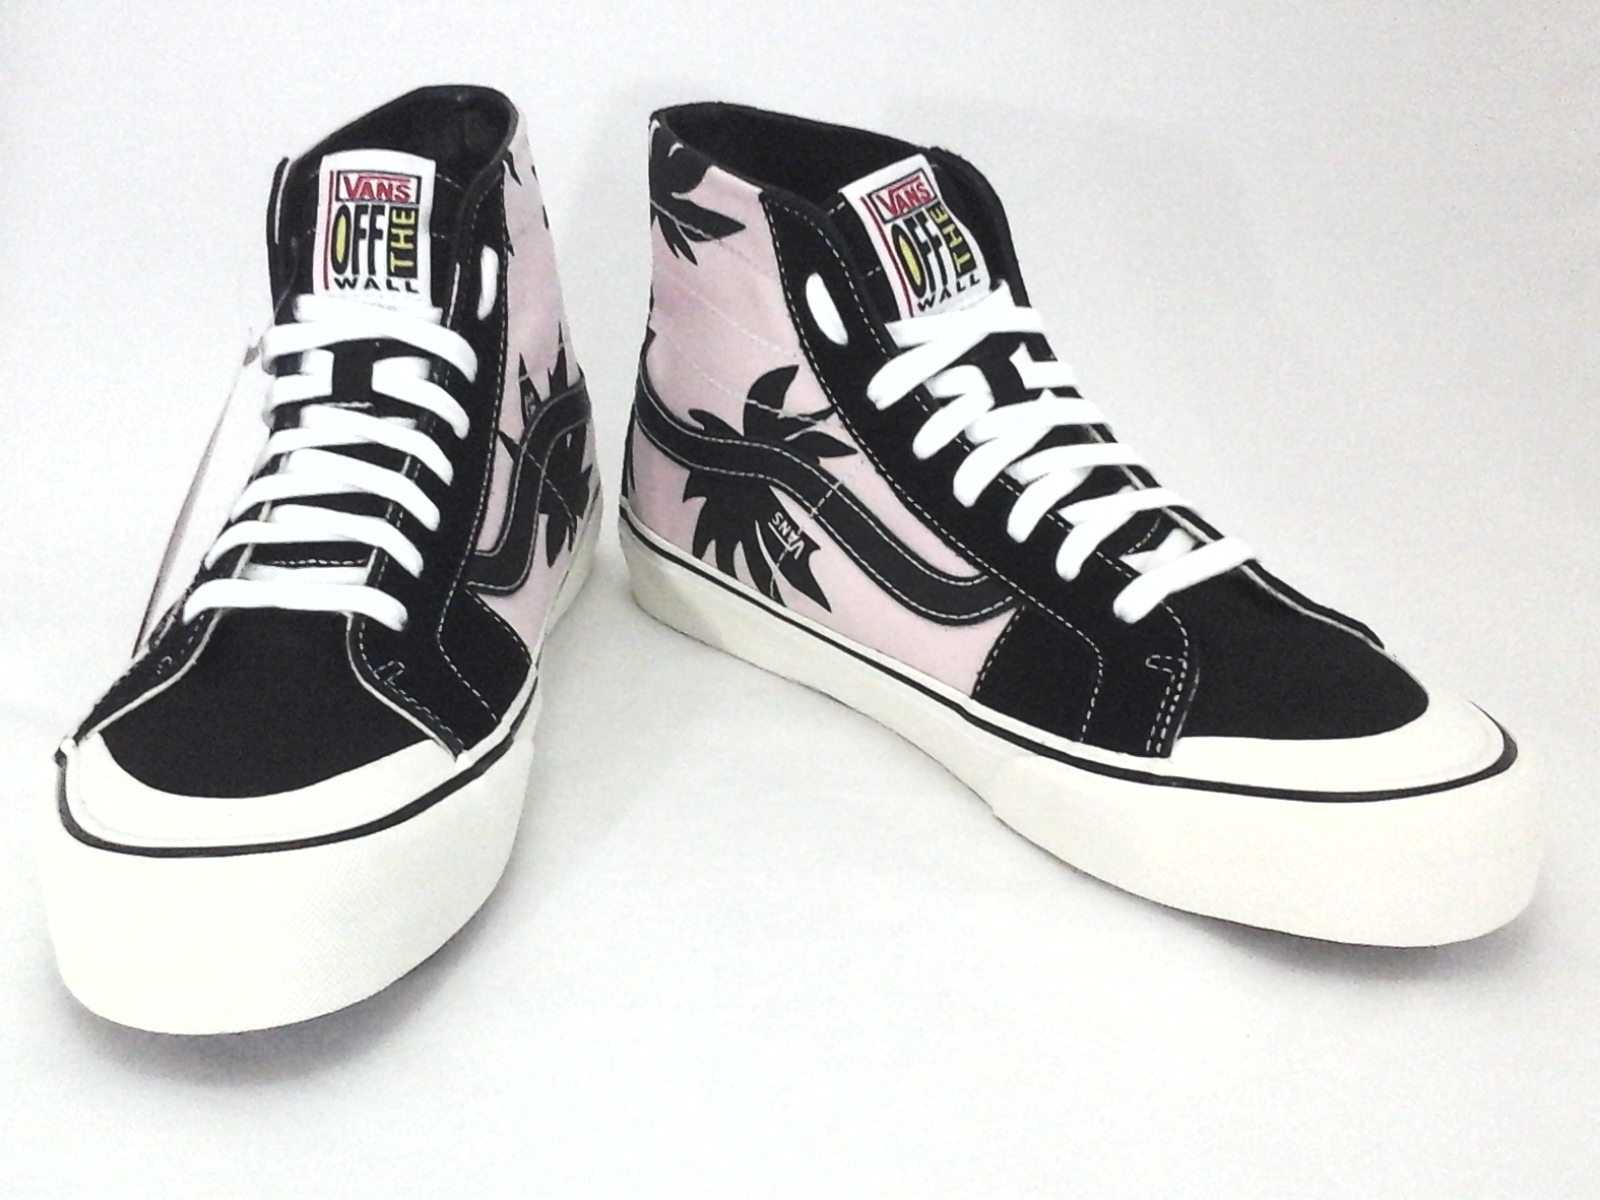 1896c7e4a0 Details about VANS High Top Shoes Skate SK8 Pink Black Palm Floral Unisex  Mens 7.5 Womens 9